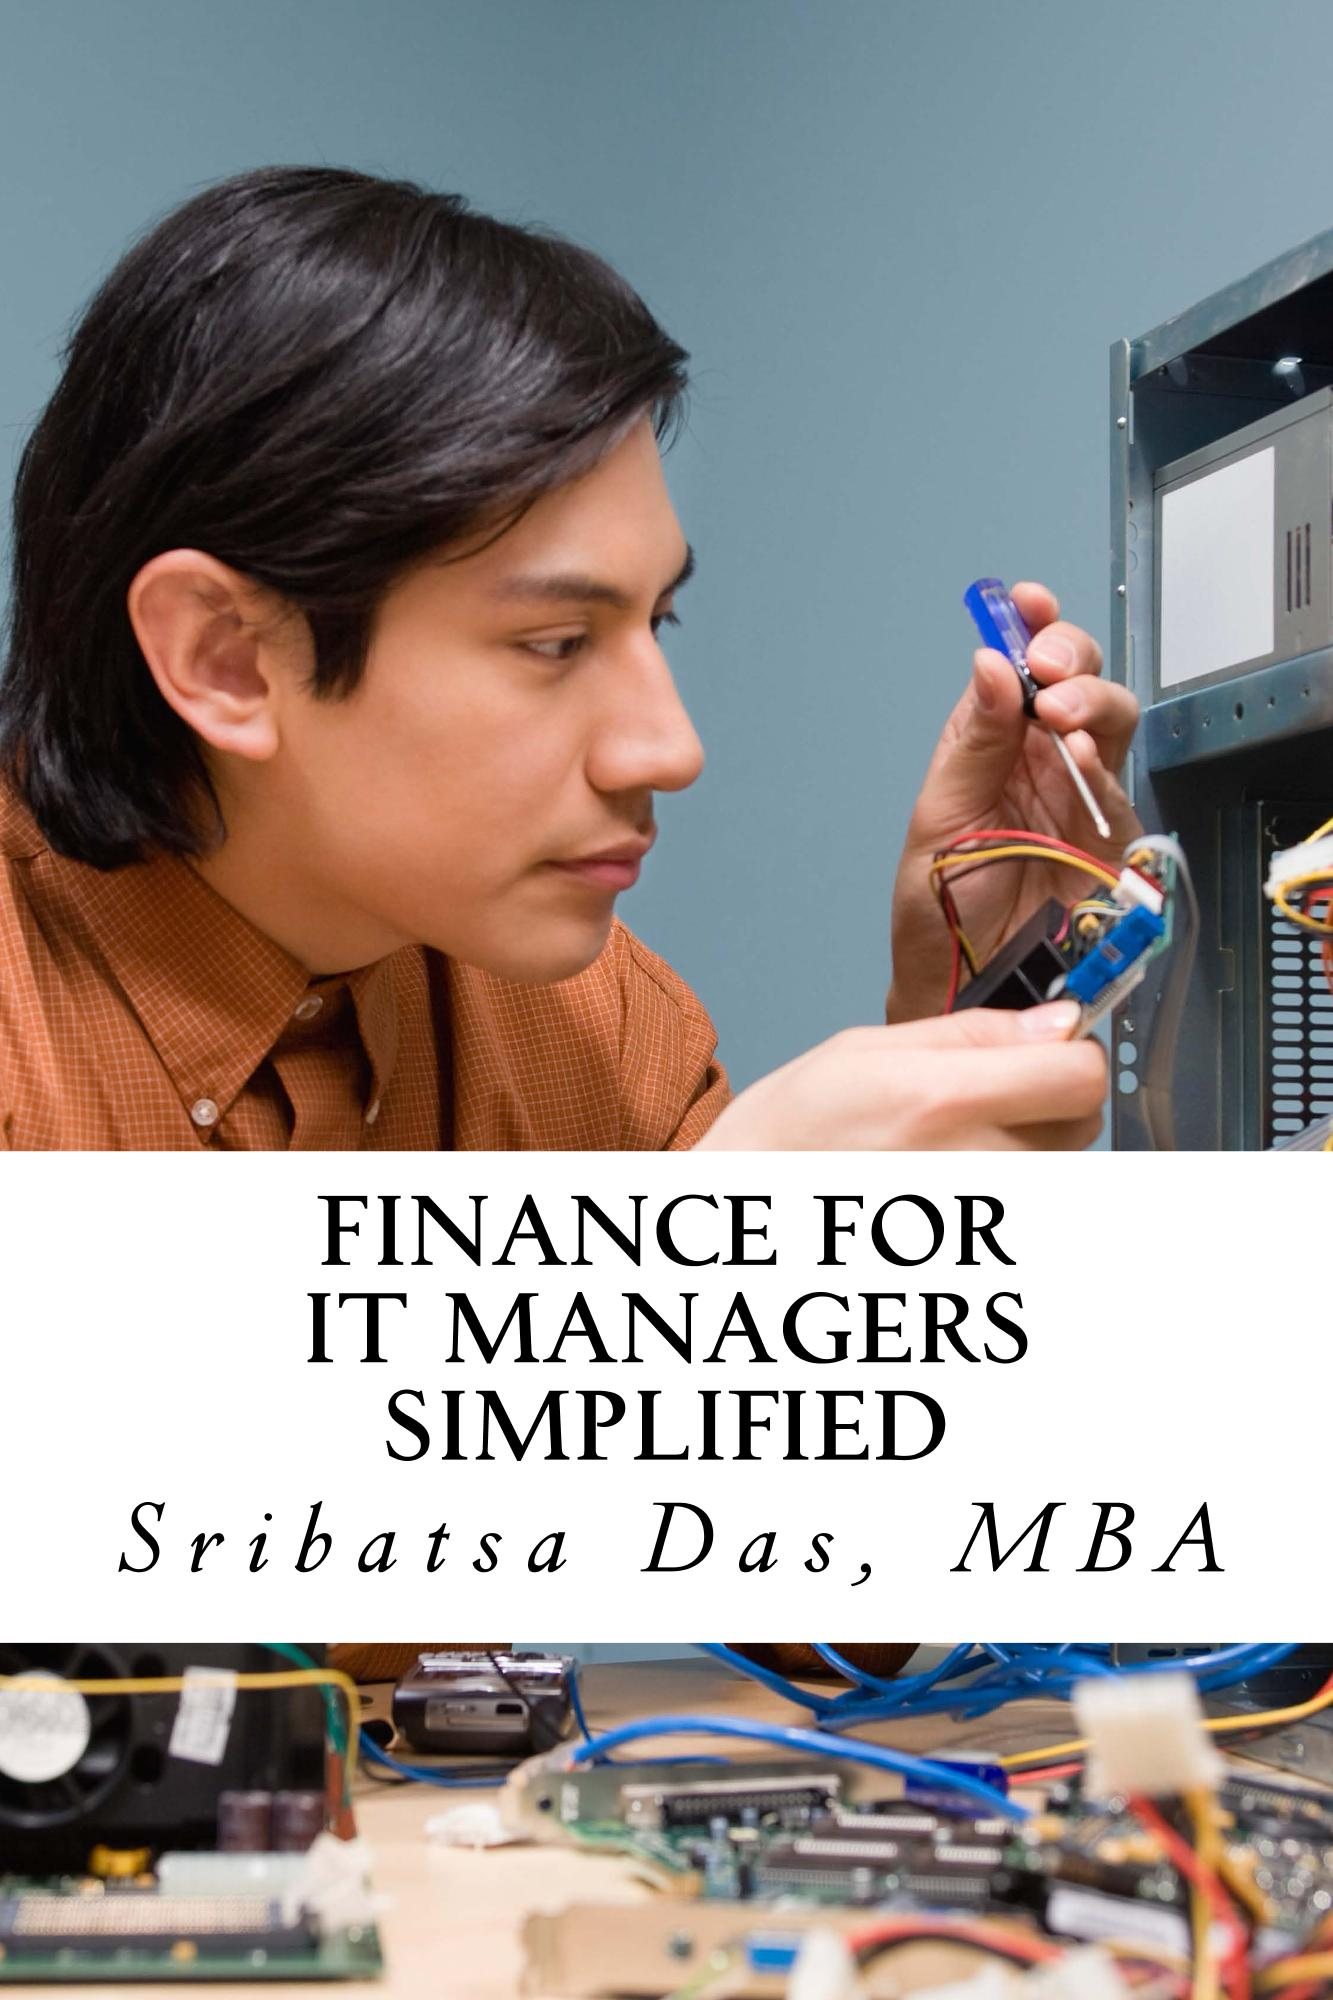 Finance for IT Managers Simplfied